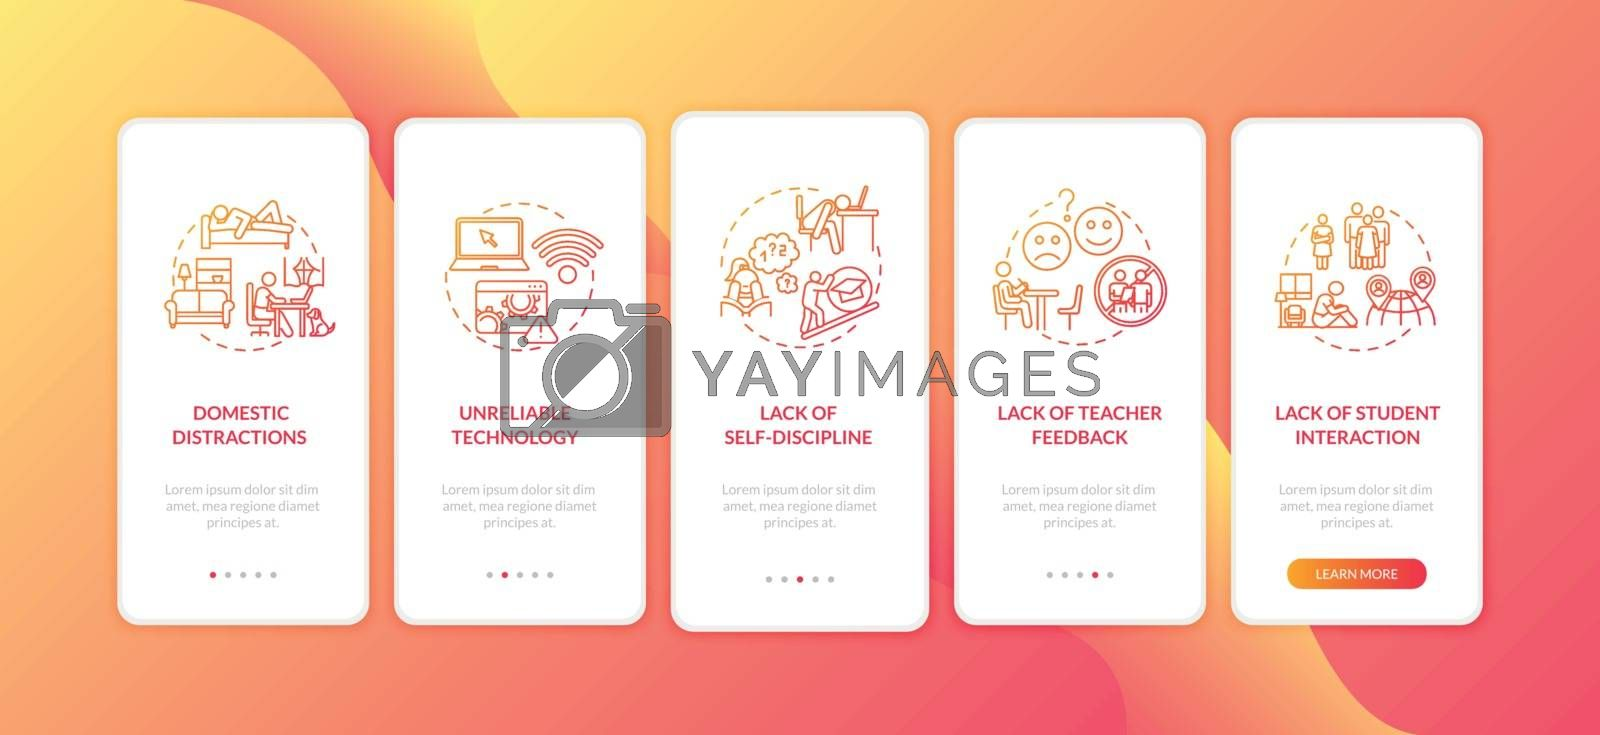 Distance learning cons onboarding mobile app page screen with concepts. Domestic distraction. Remote classes walkthrough 5 steps graphic instructions. UI vector template with RGB color illustrations